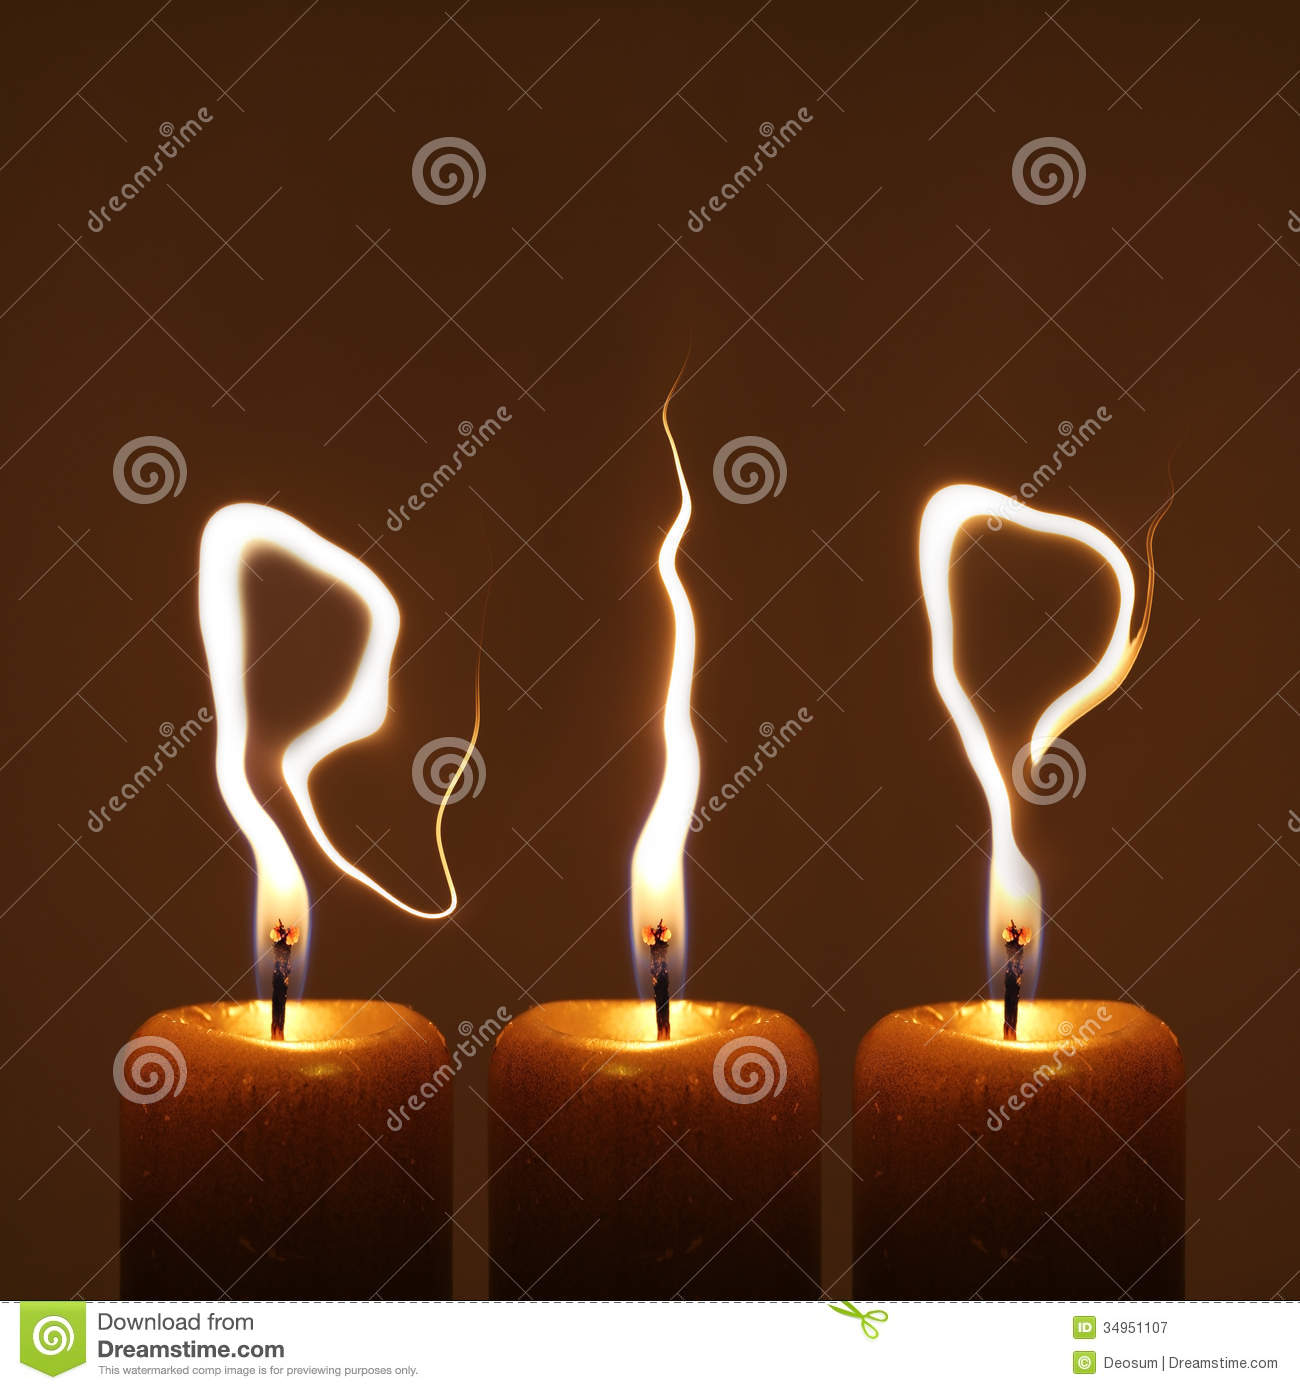 rest in peace rip royalty free stock photography image angels clip art angels clip art pictures